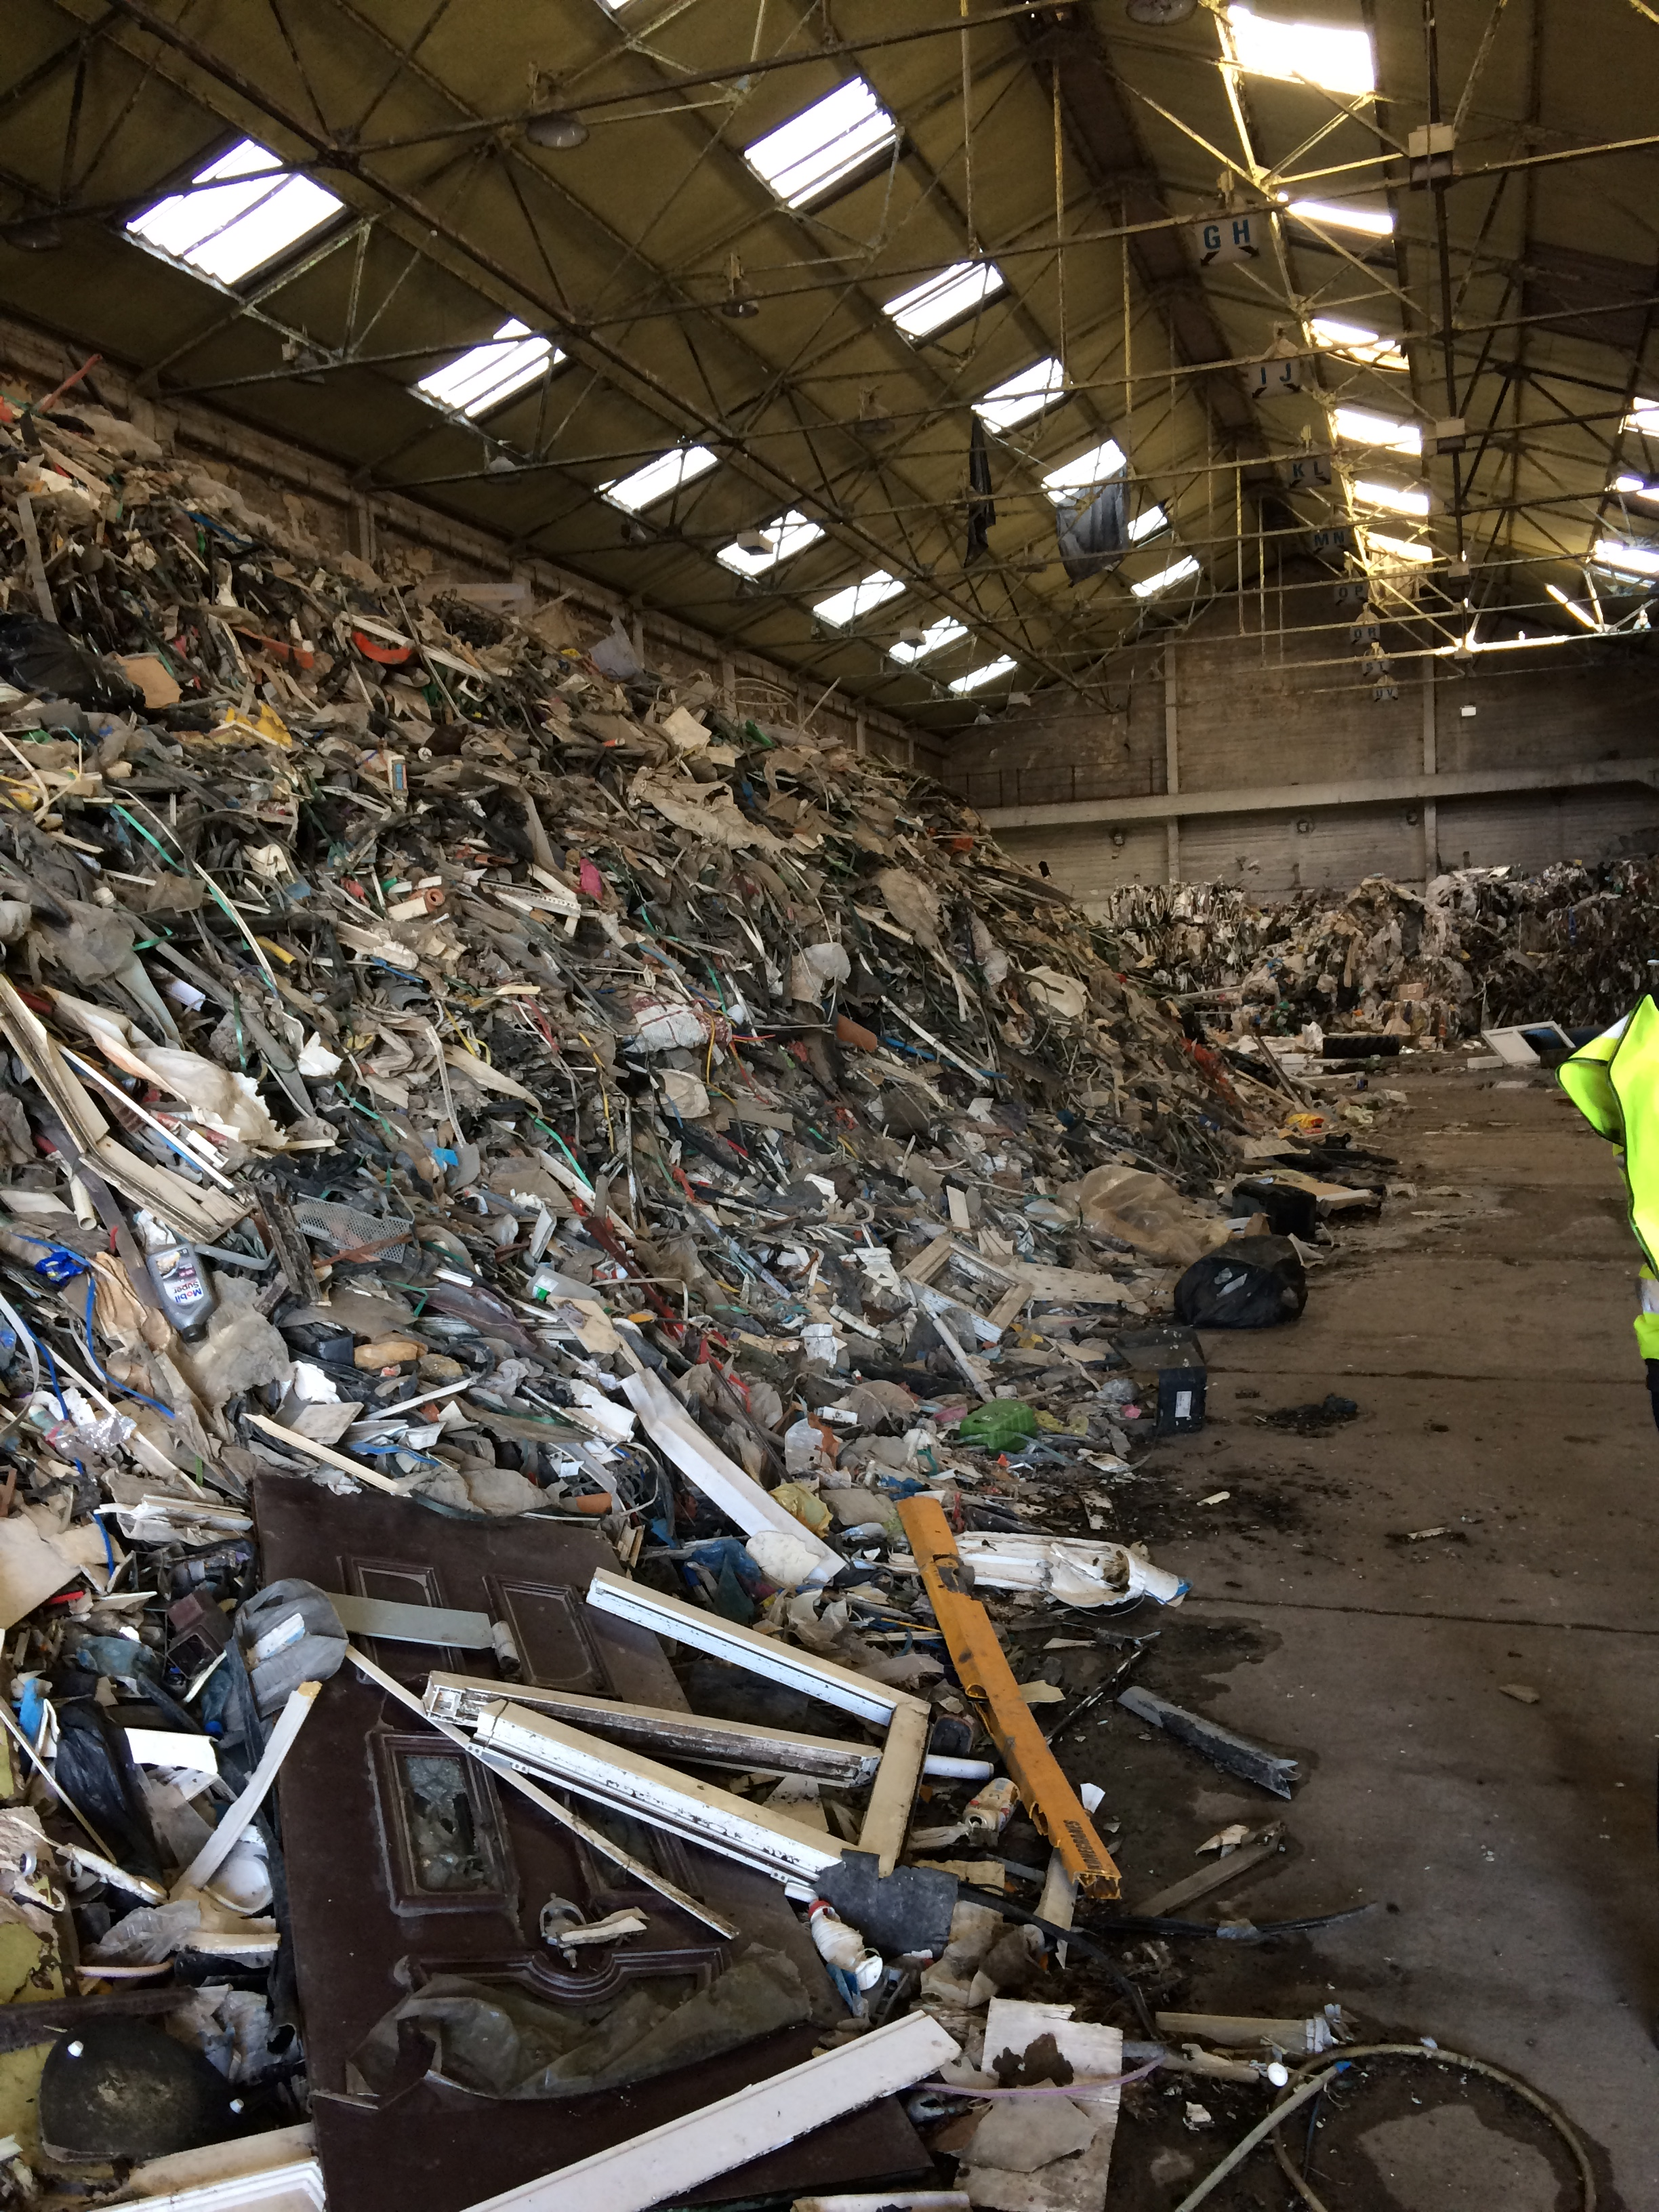 Unit waste clearance